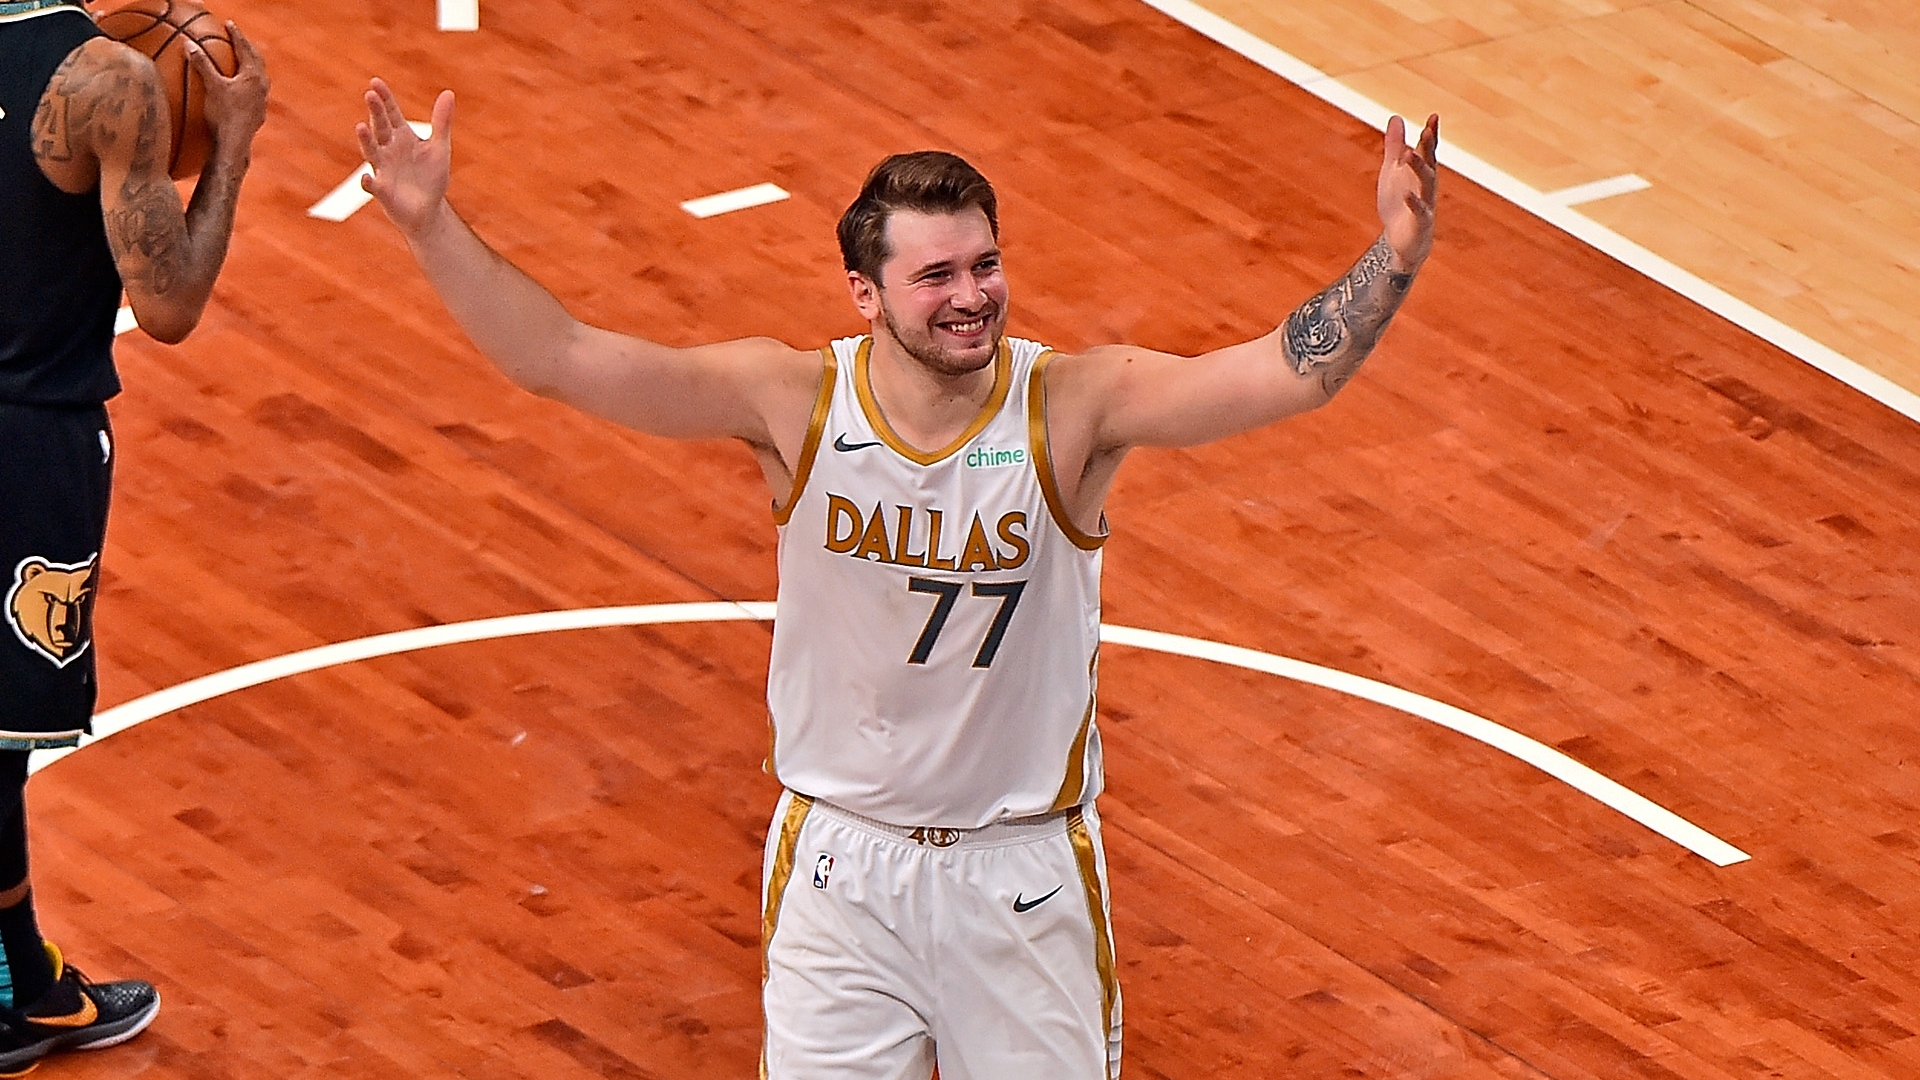 Doncic on buzzer-beating three-pointer: Those are the best feelings ever